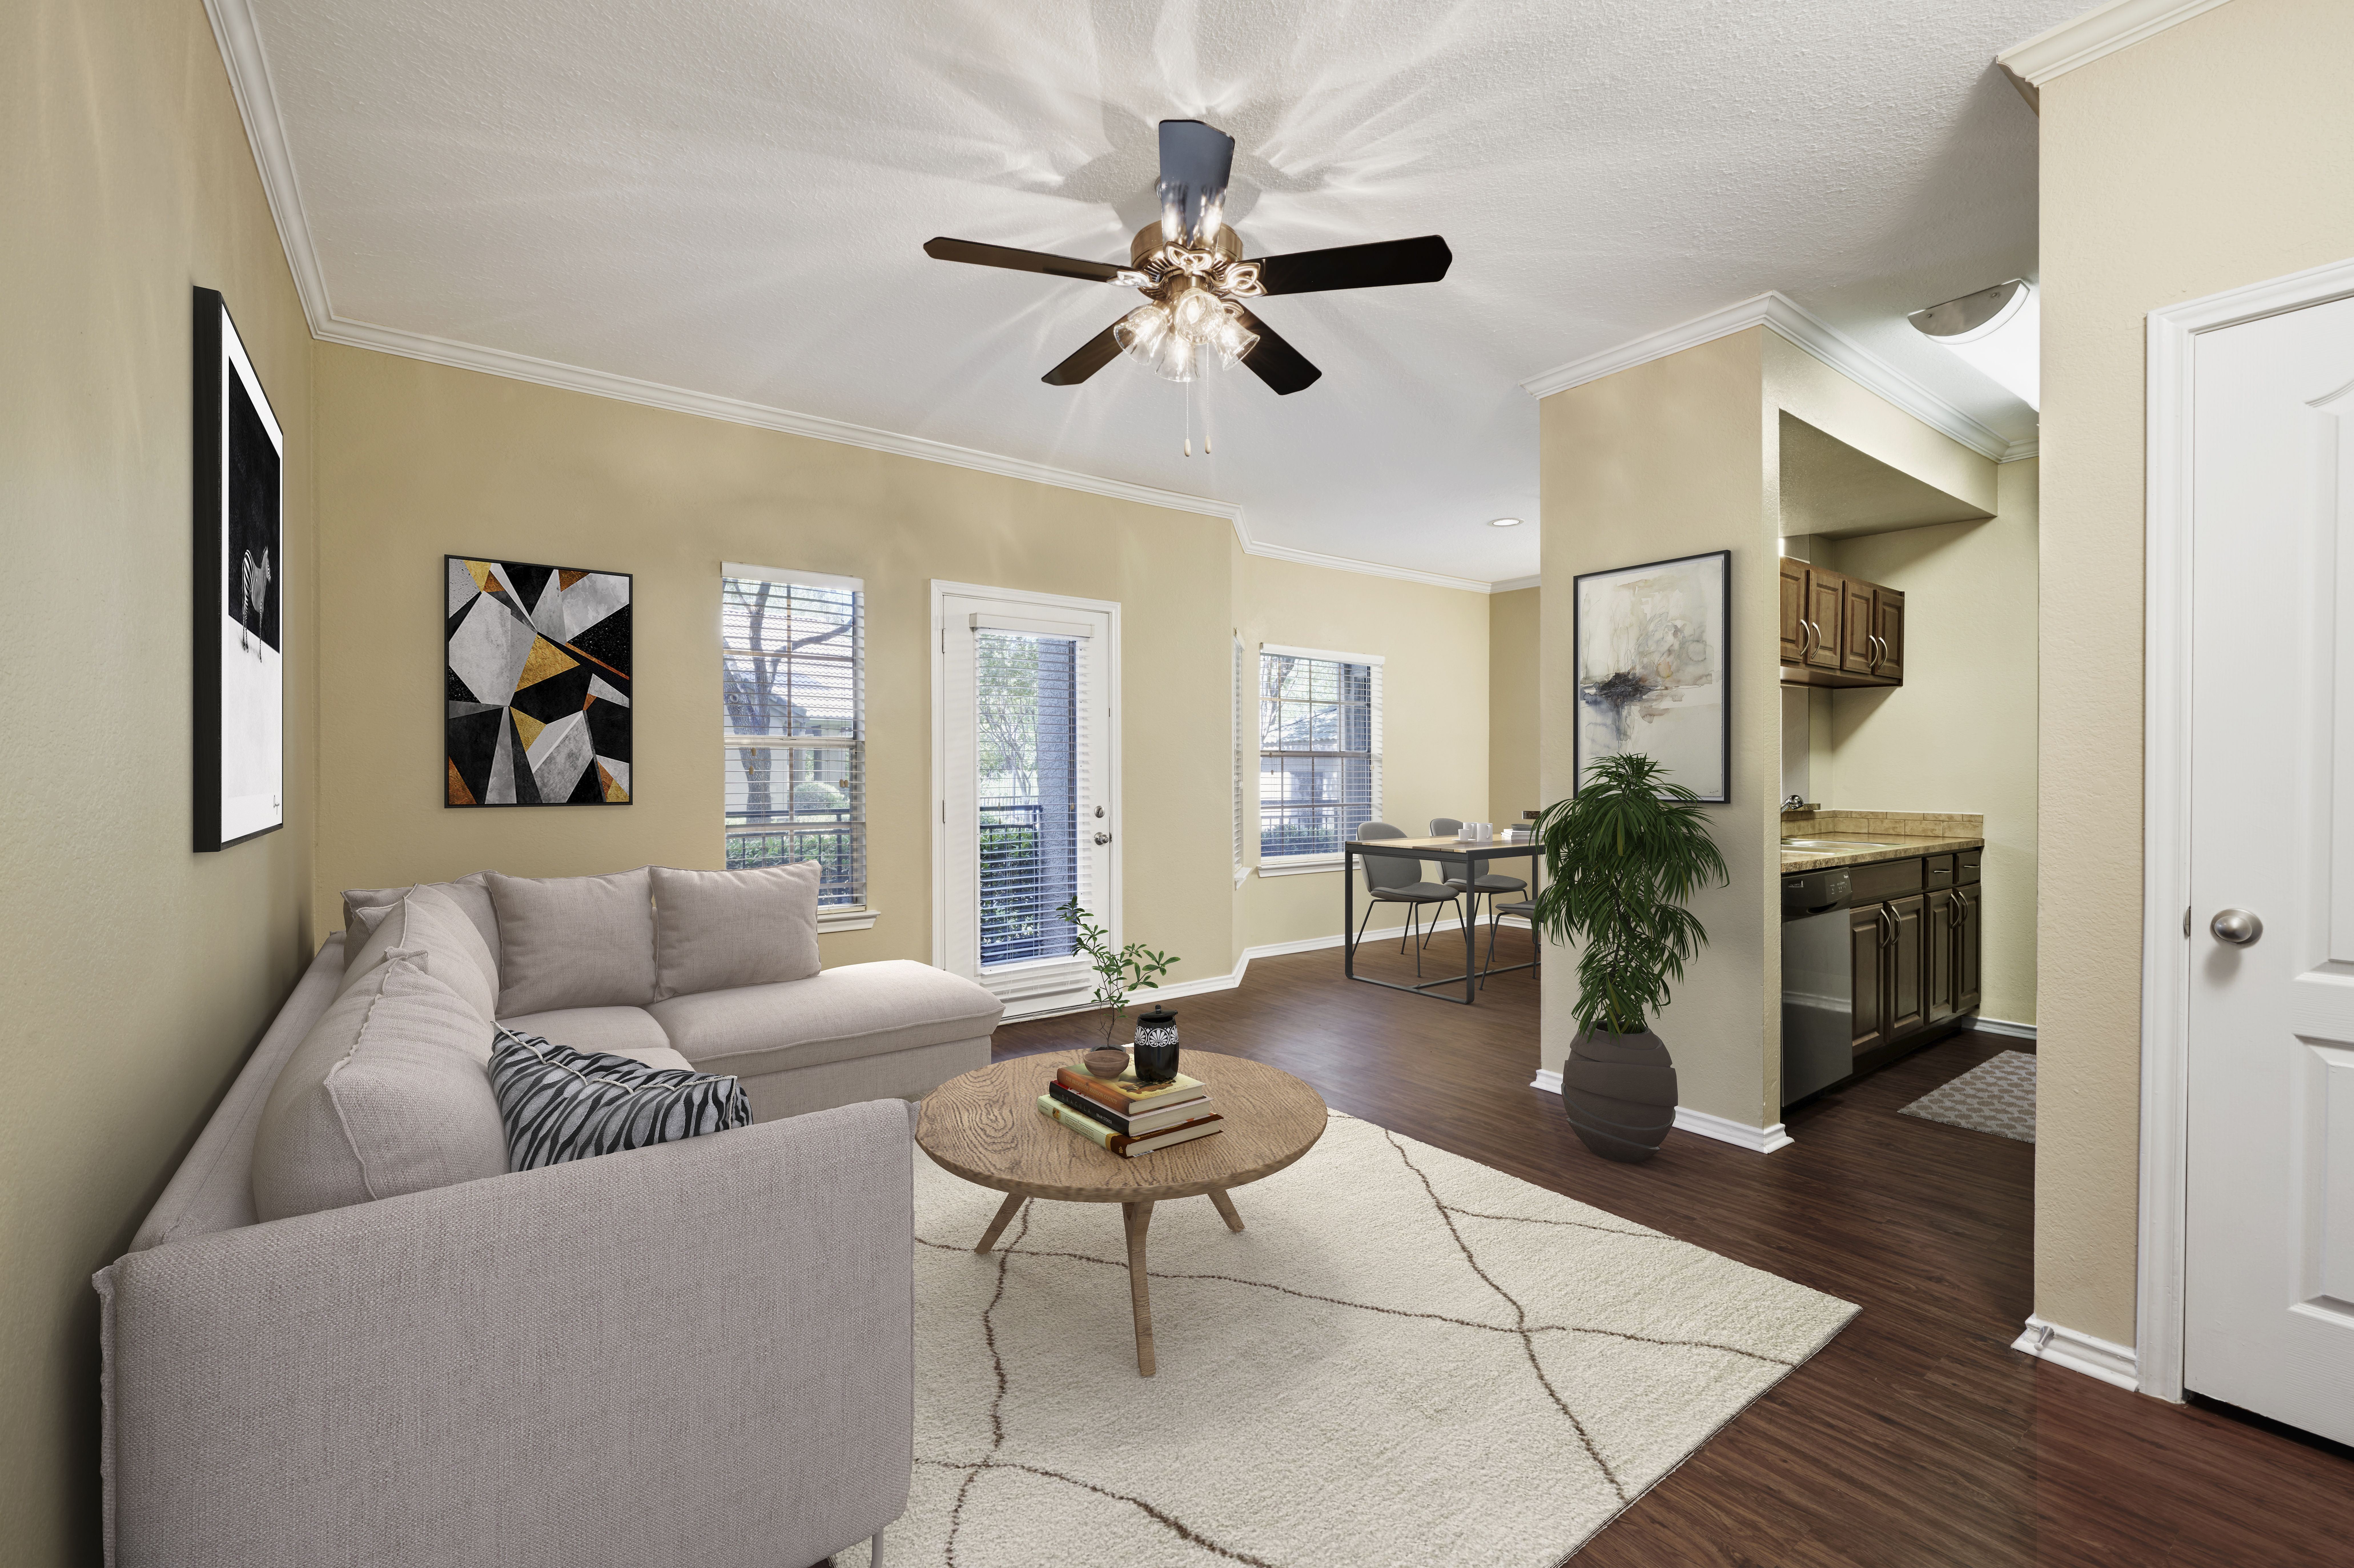 Can You Get An Apartment At 18 In Texas 26 Dreamy One Bedroom Apartments Plano Tx Sample The Apartments Will Often Call To Check The Lette One Bedroom Apartment Bedroom Apartment Apartments For Rent